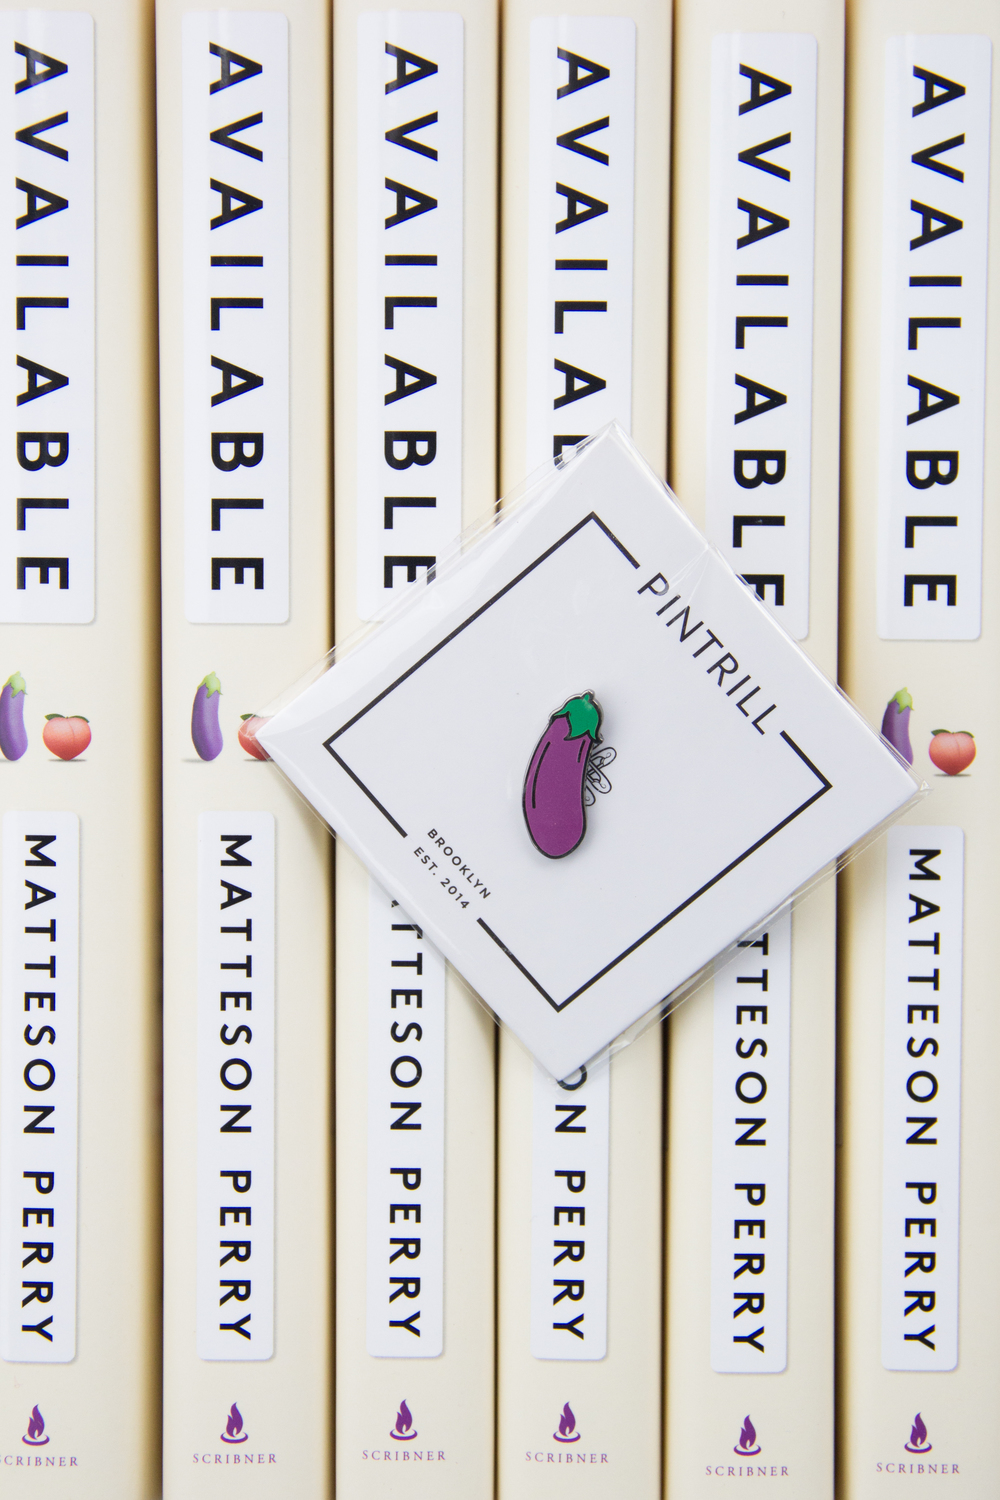 Eggplant Emoji Pin for the win! Matteson Perry's Available - A Memoir of Heartbreak, Hookups, Love and Brunch